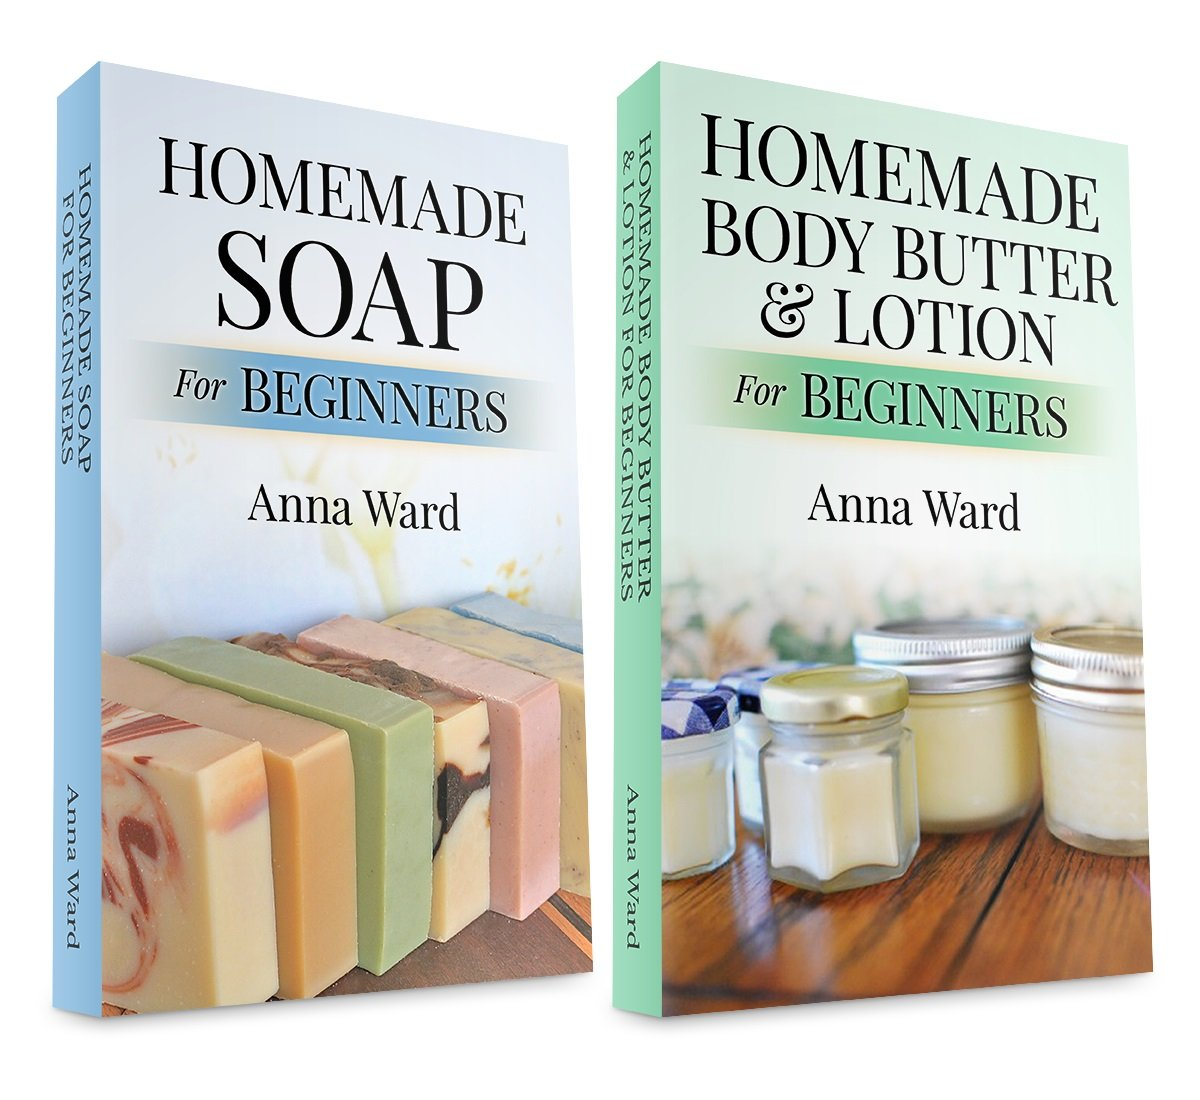 http://www.amazon.com/Bundle-Homemade-Beginners-Butter-Lotion-ebook/dp/B00LCEMIF8/ref=as_sl_pc_ss_til?tag=lettfromahome-20&linkCode=w01&linkId=6GIO4S2YEJMG6IX6&creativeASIN=B00LCEMIF8